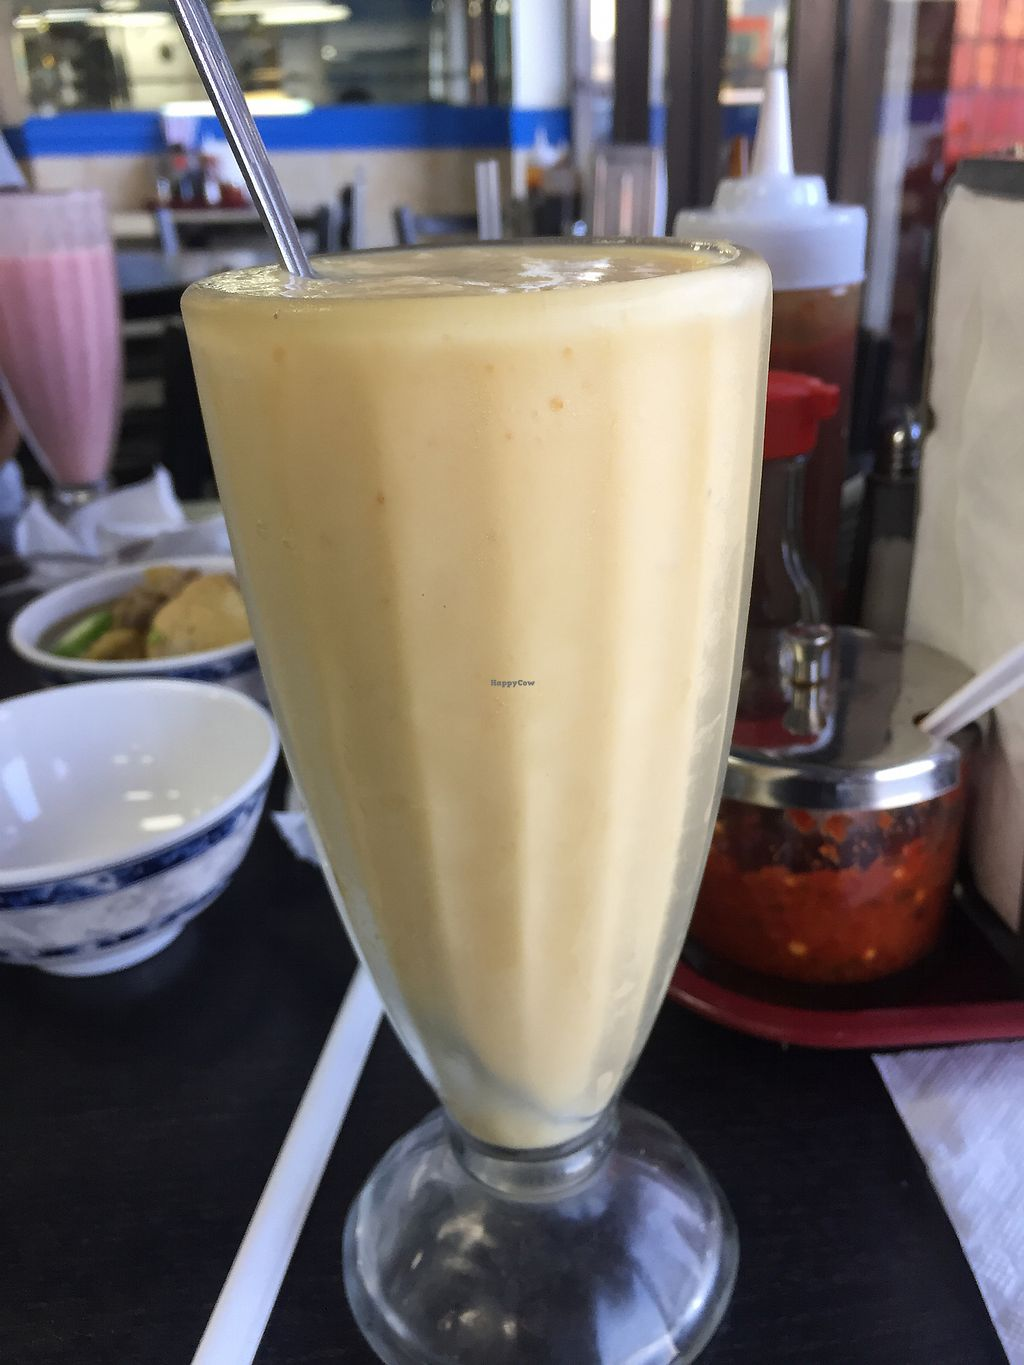 """Photo of Veggie Life Restaurant  by <a href=""""/members/profile/R-MV"""">R-MV</a> <br/>Jackfruit Smoothie <br/> August 24, 2017  - <a href='/contact/abuse/image/14017/296869'>Report</a>"""